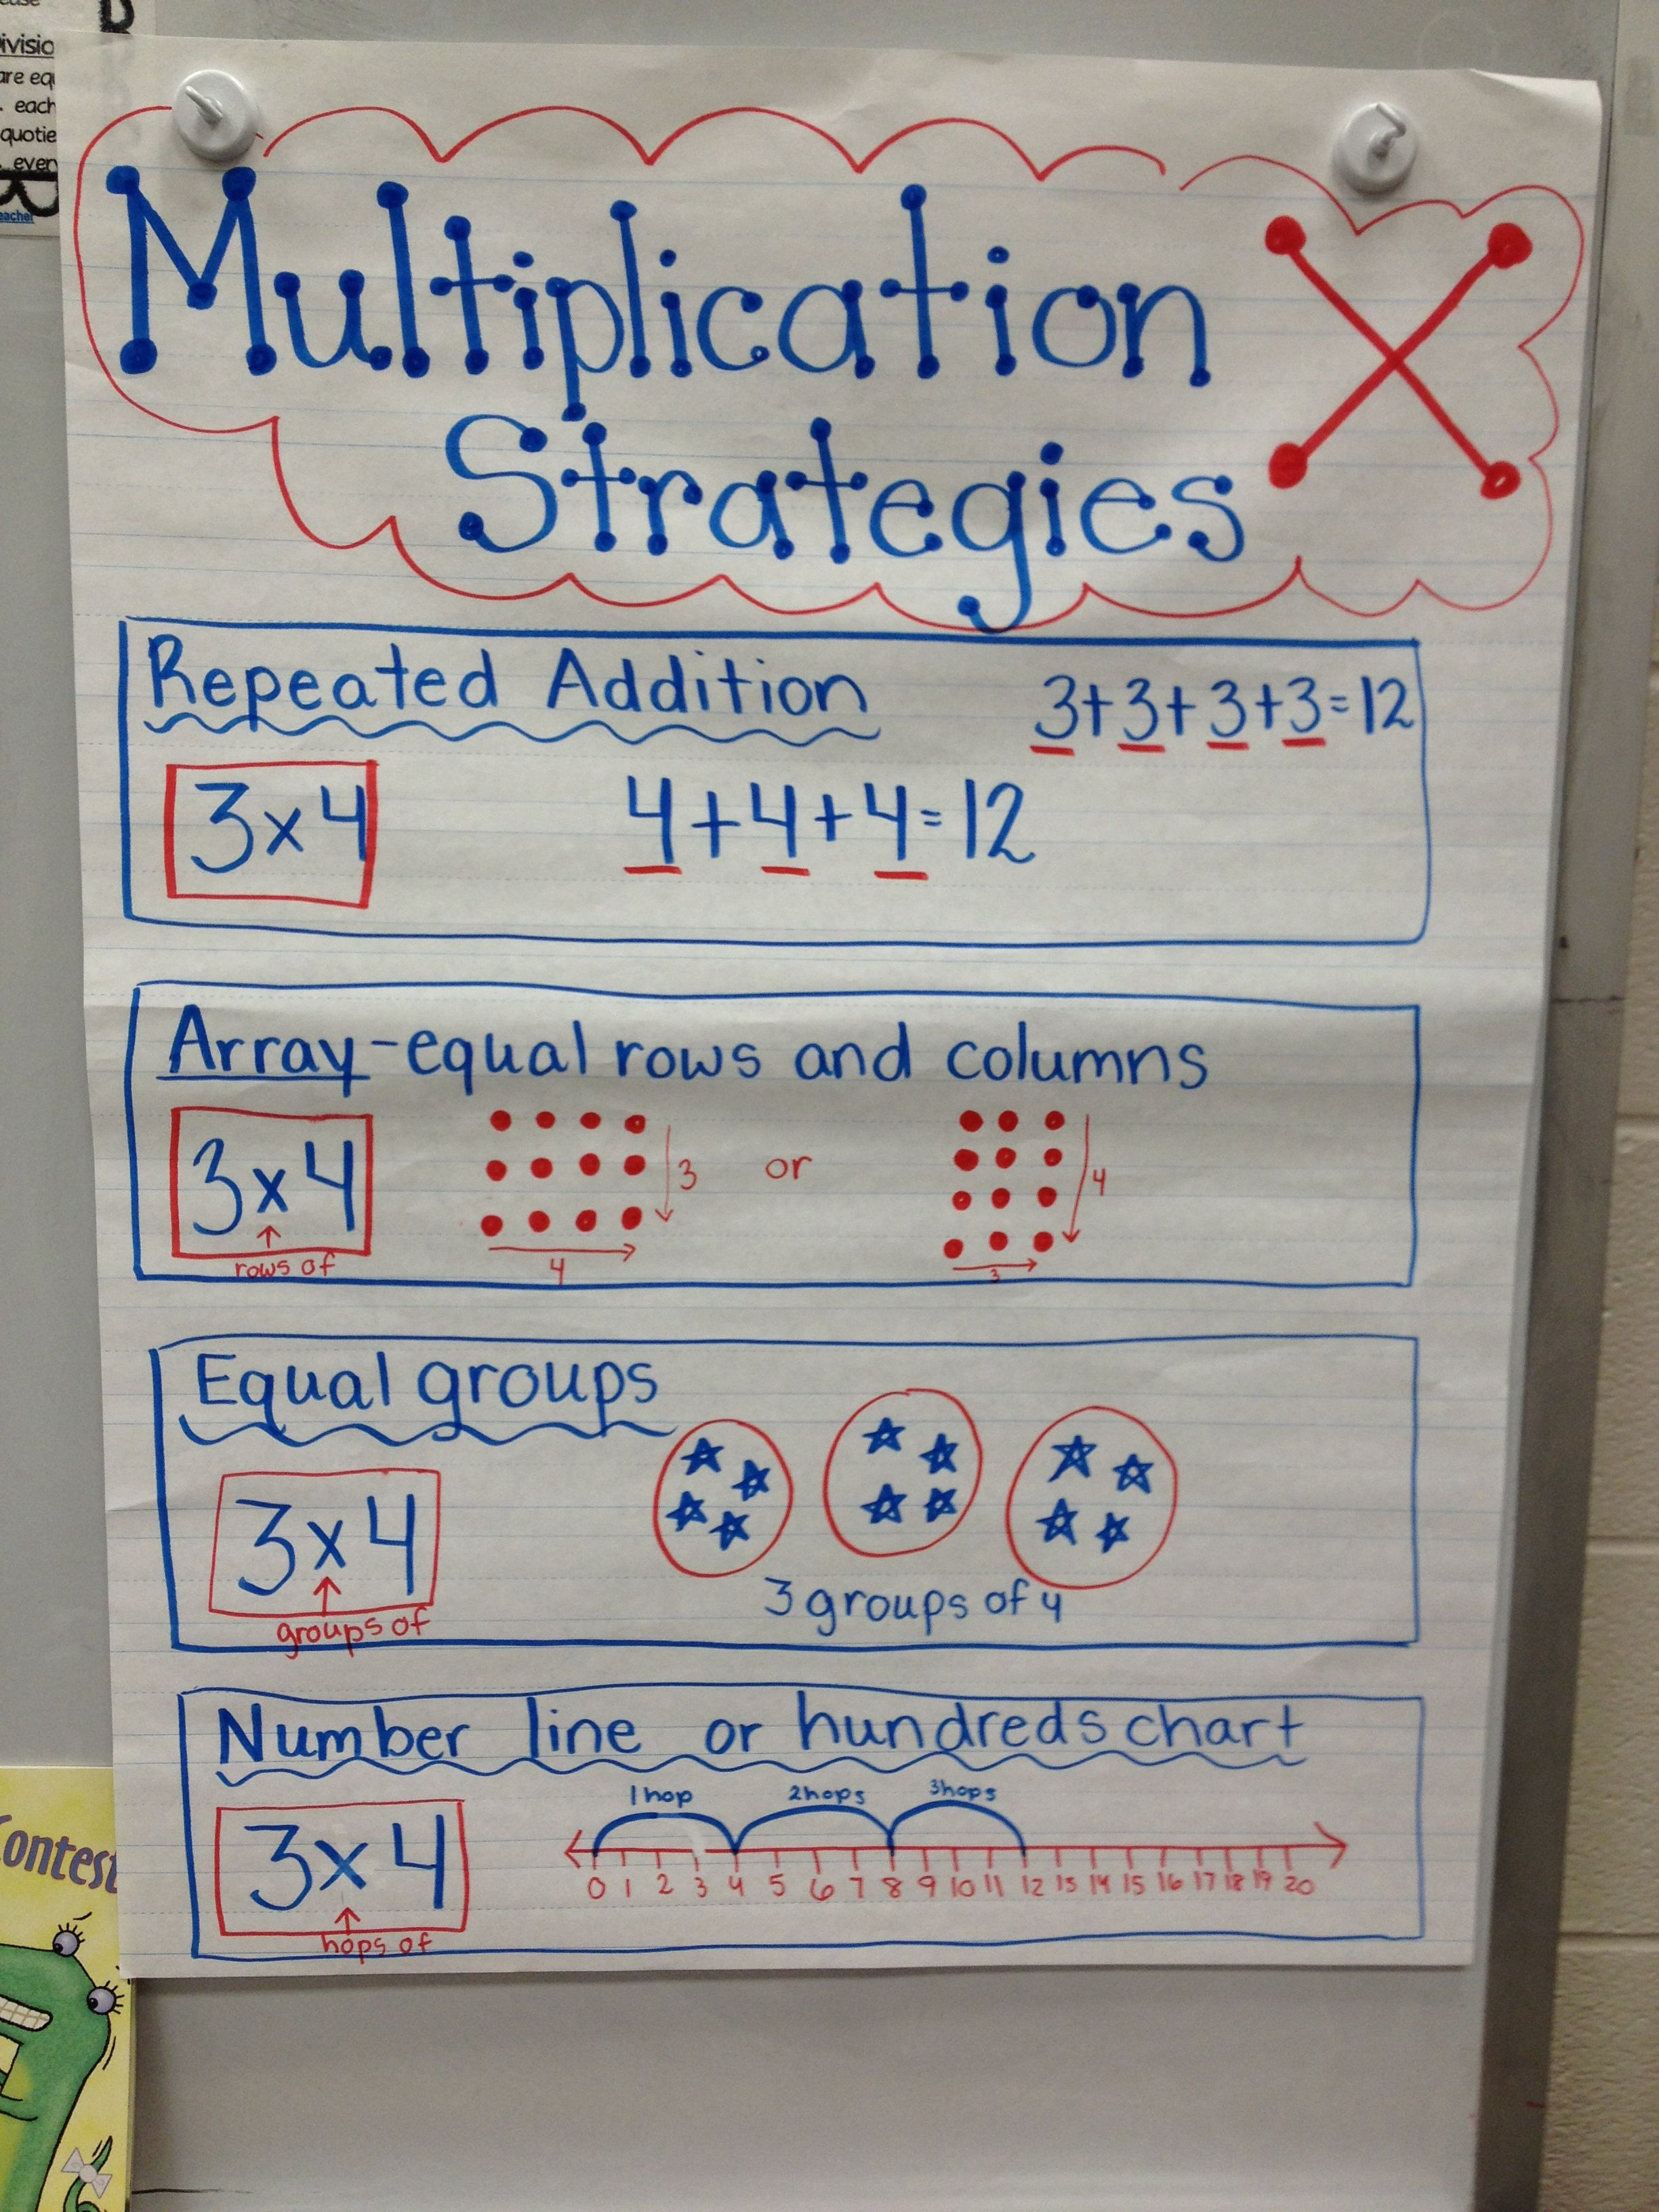 Multiplication Strategies Anchor Chart Very Simple Easy To Understand For All Students